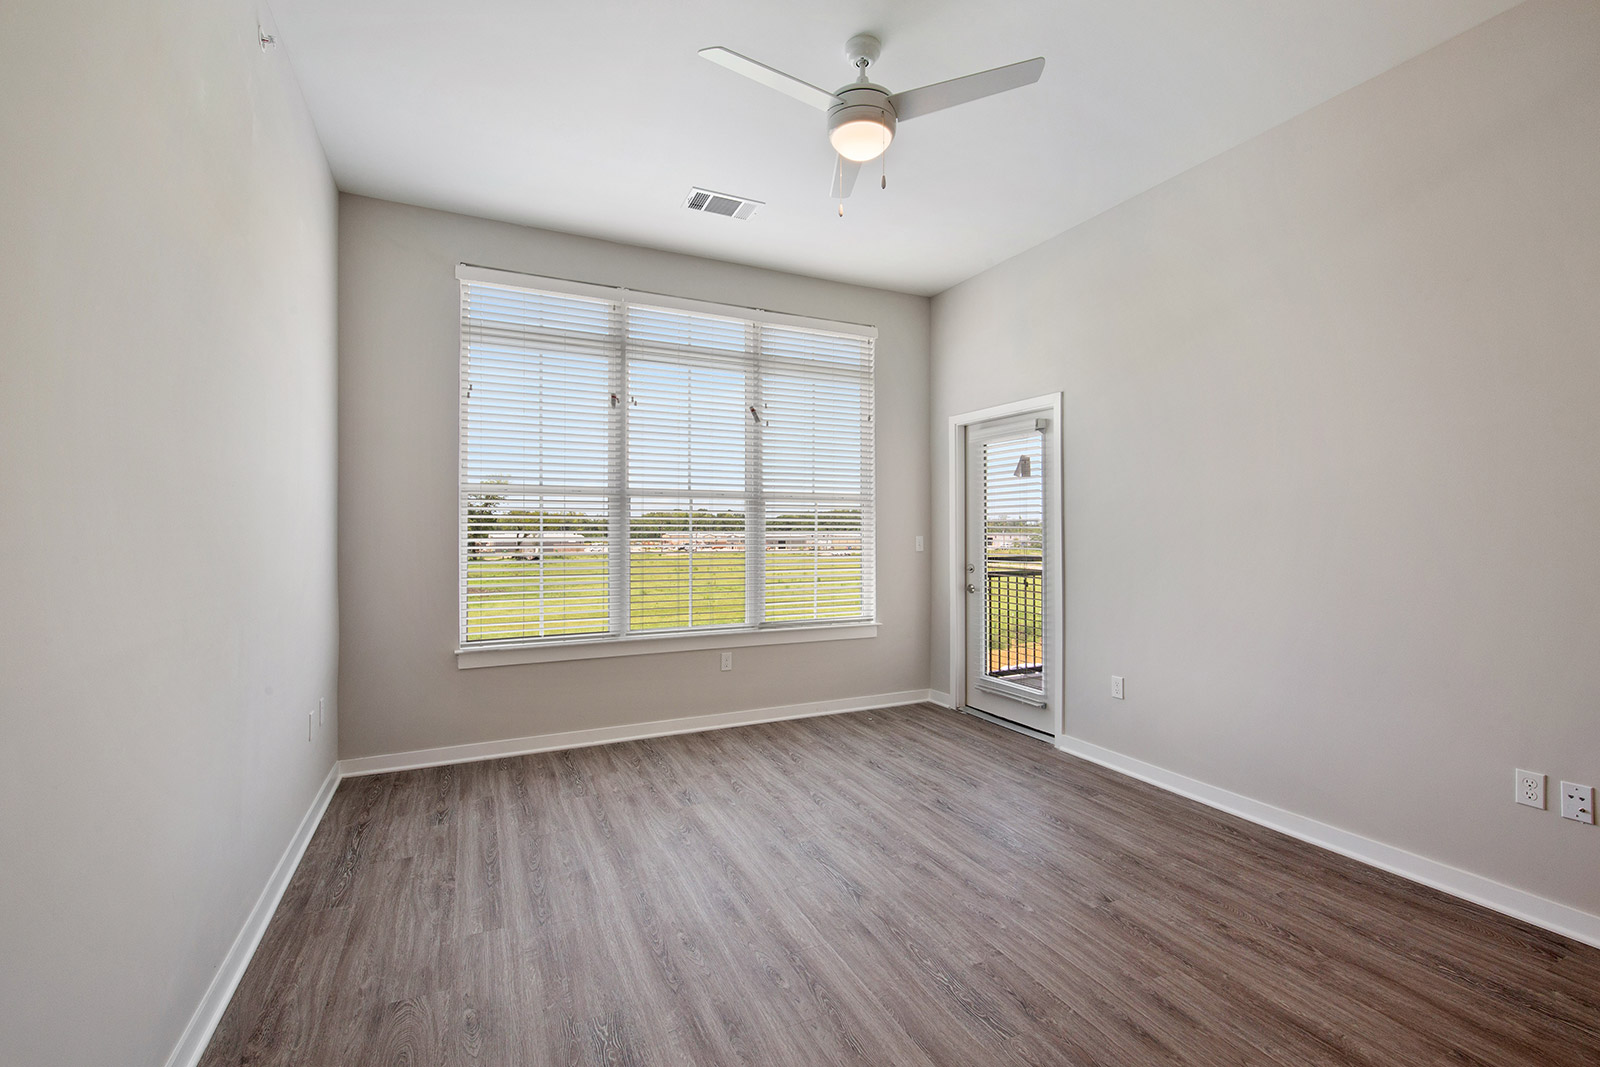 Open Floor Plans at Sawgrass Point in Gonzales, Louisiana